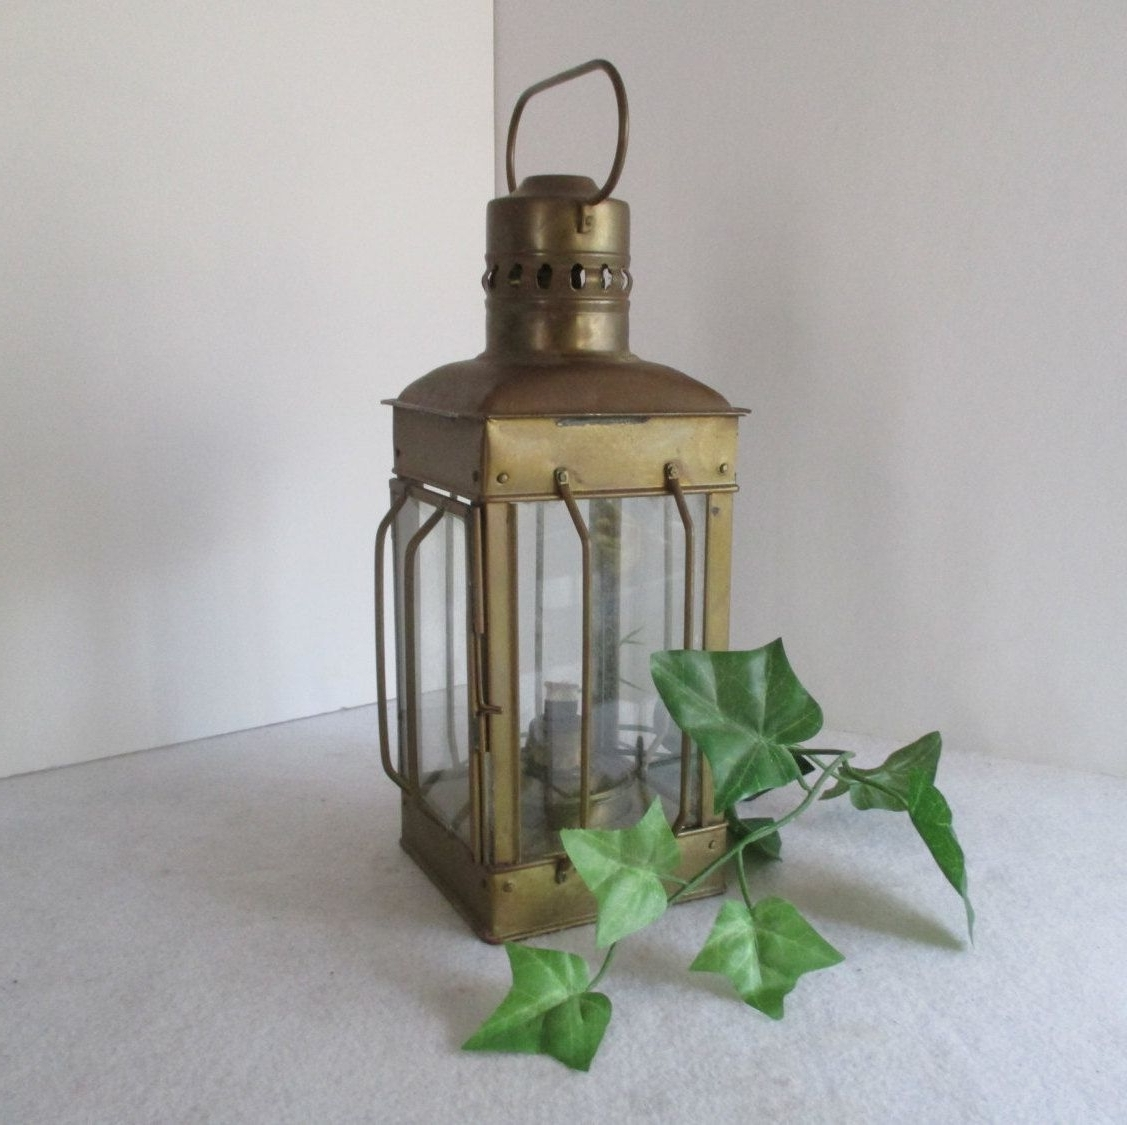 Popular Etsy Outdoor Lanterns Regarding Lantern, Vintage Alcohol Or Candle Hurricane Lamp, Metal, Hanging (View 8 of 20)